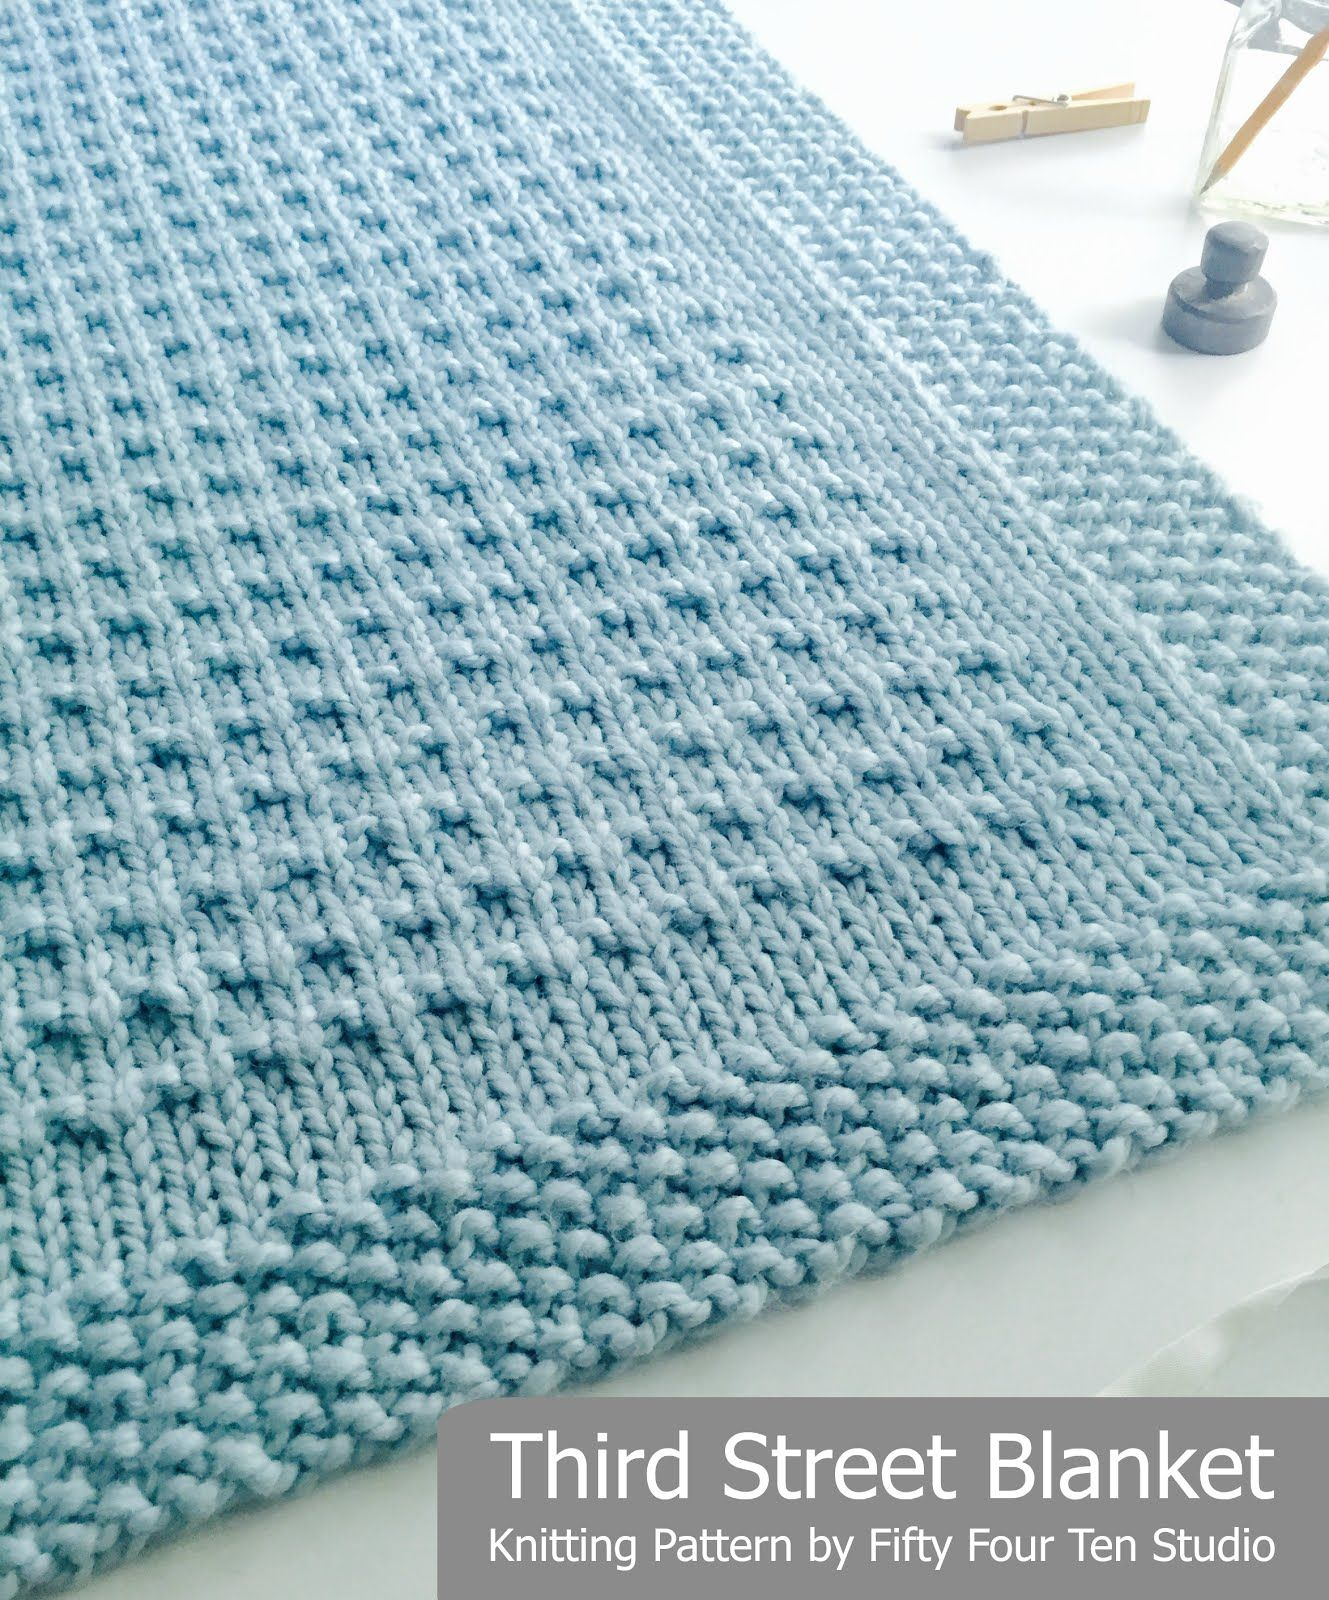 Knitting Blankets : Third street blanket knitting pattern by fifty four ten